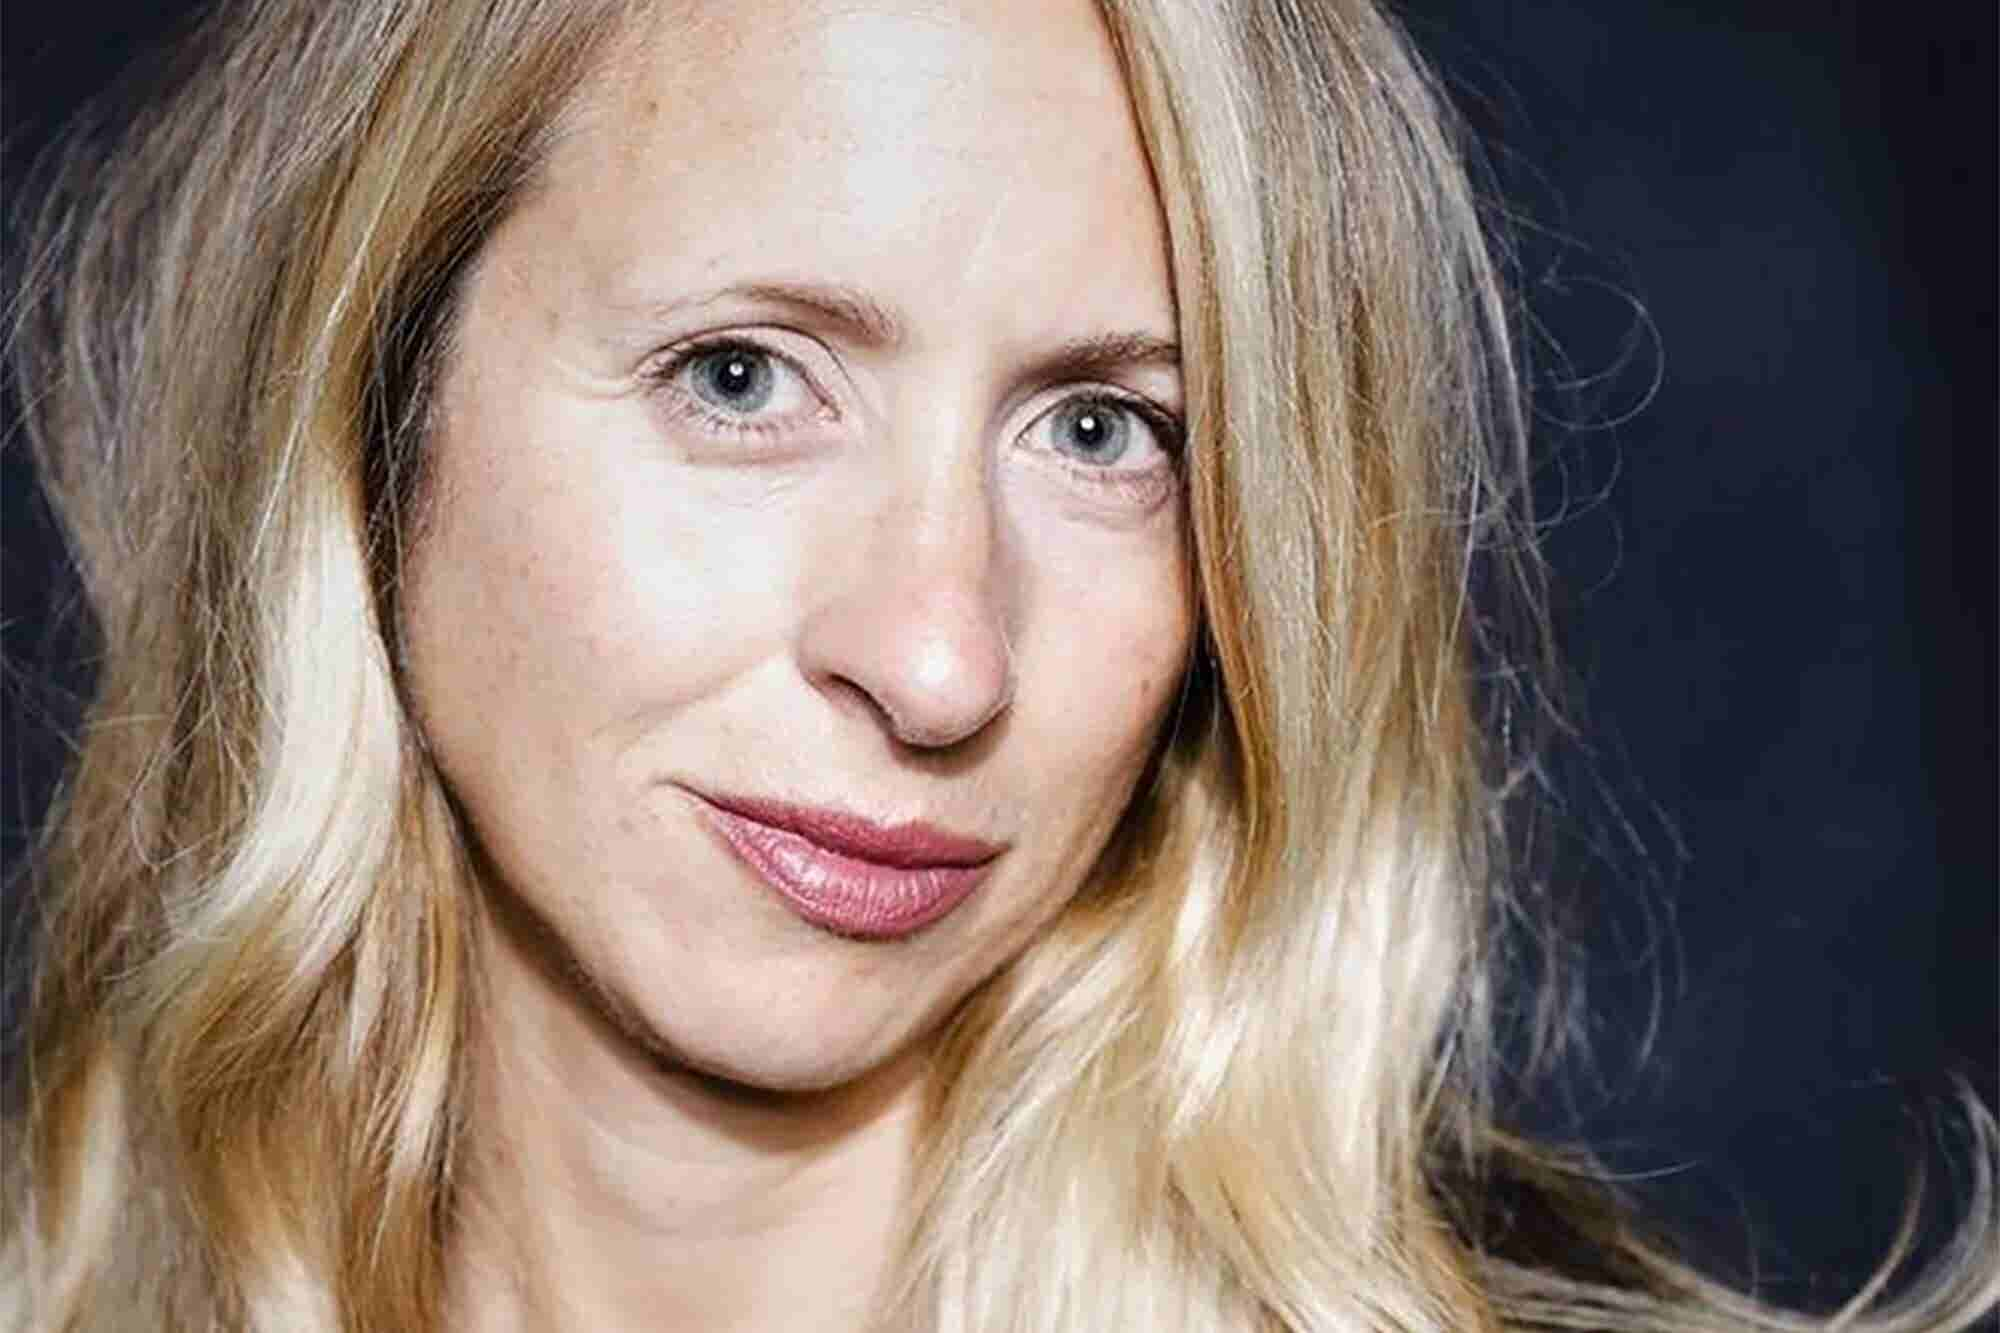 She Co-Founded One of the First Investment Funds in the Cannabis Industry